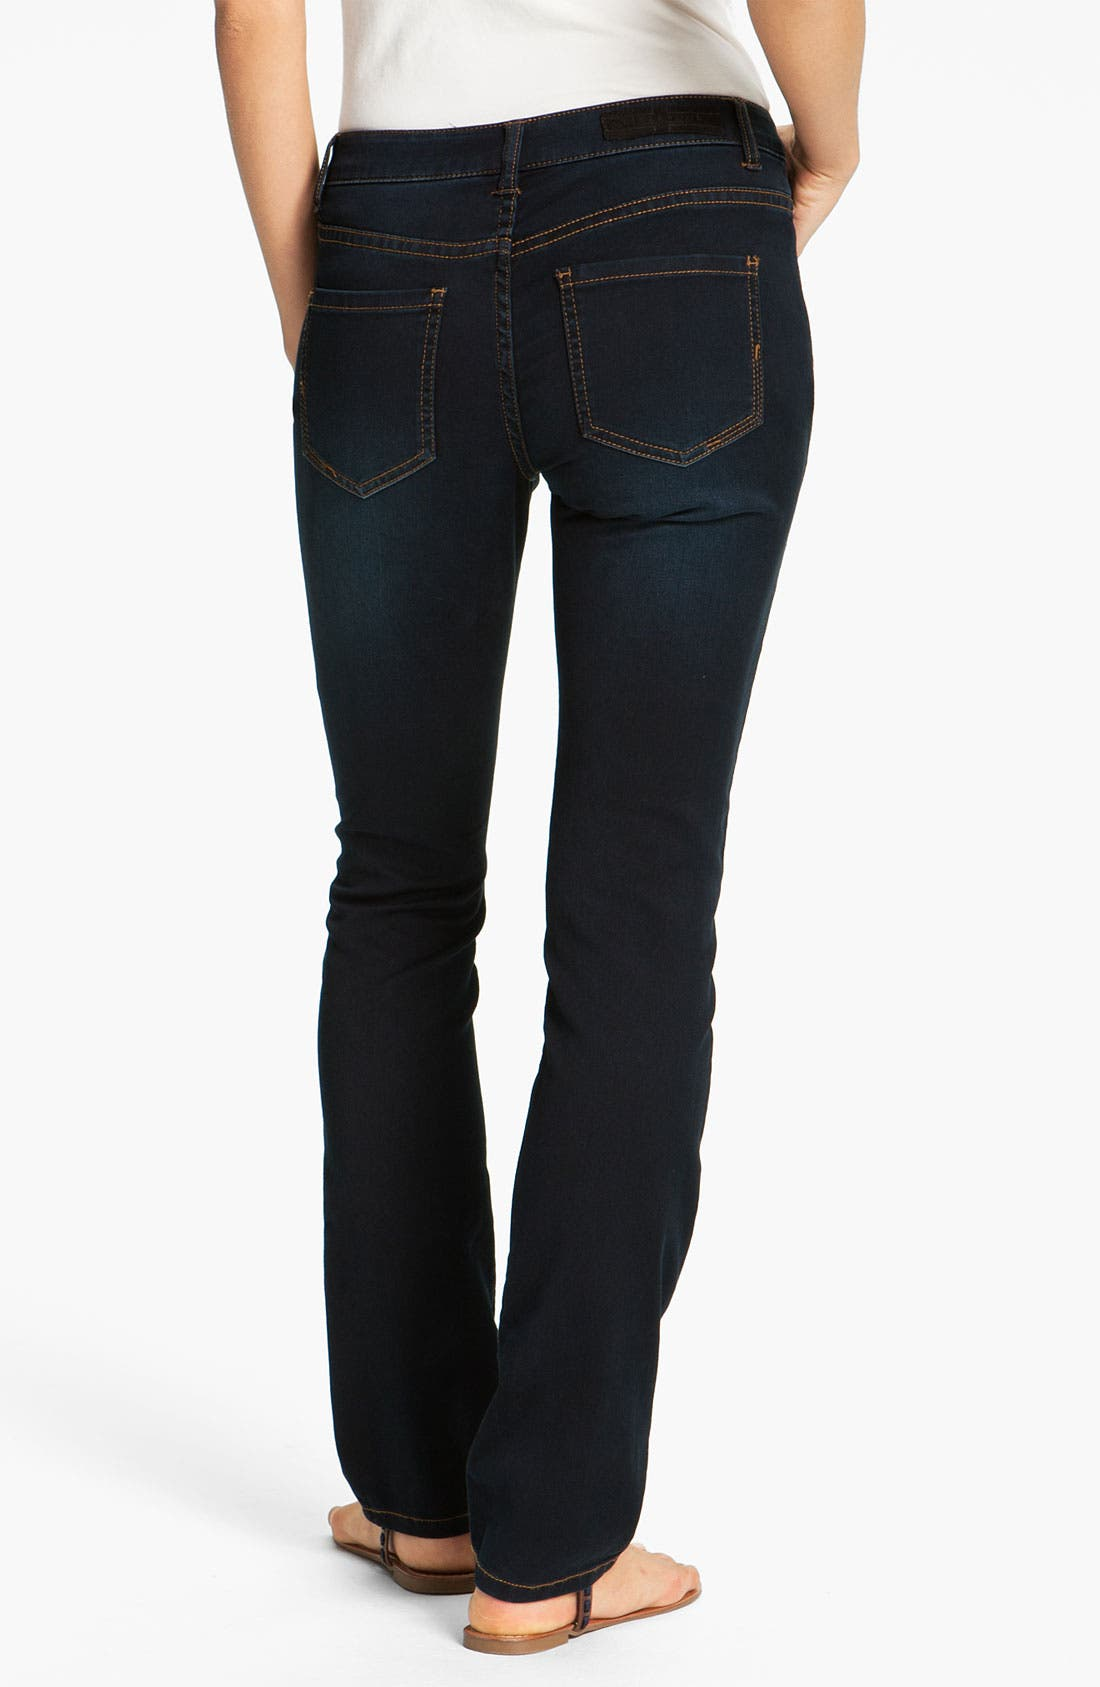 Main Image - Liverpool Jeans Company 'Sadie' Straight Leg Supersoft Stretch Jeans (Petite) (Online Only)